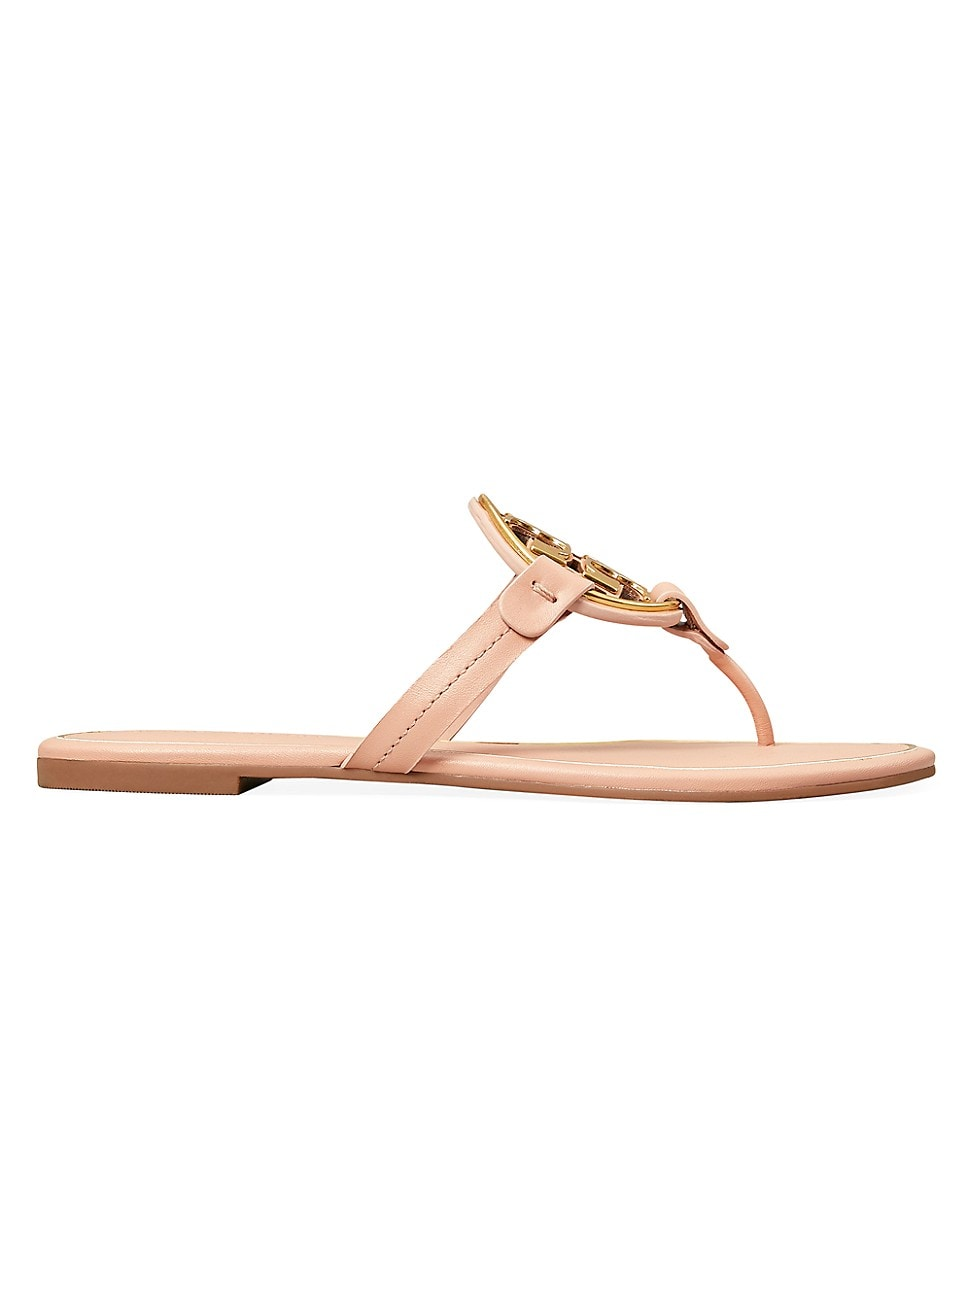 TORY BURCH WOMEN'S MILLER METAL LEATHER THONG SANDALS